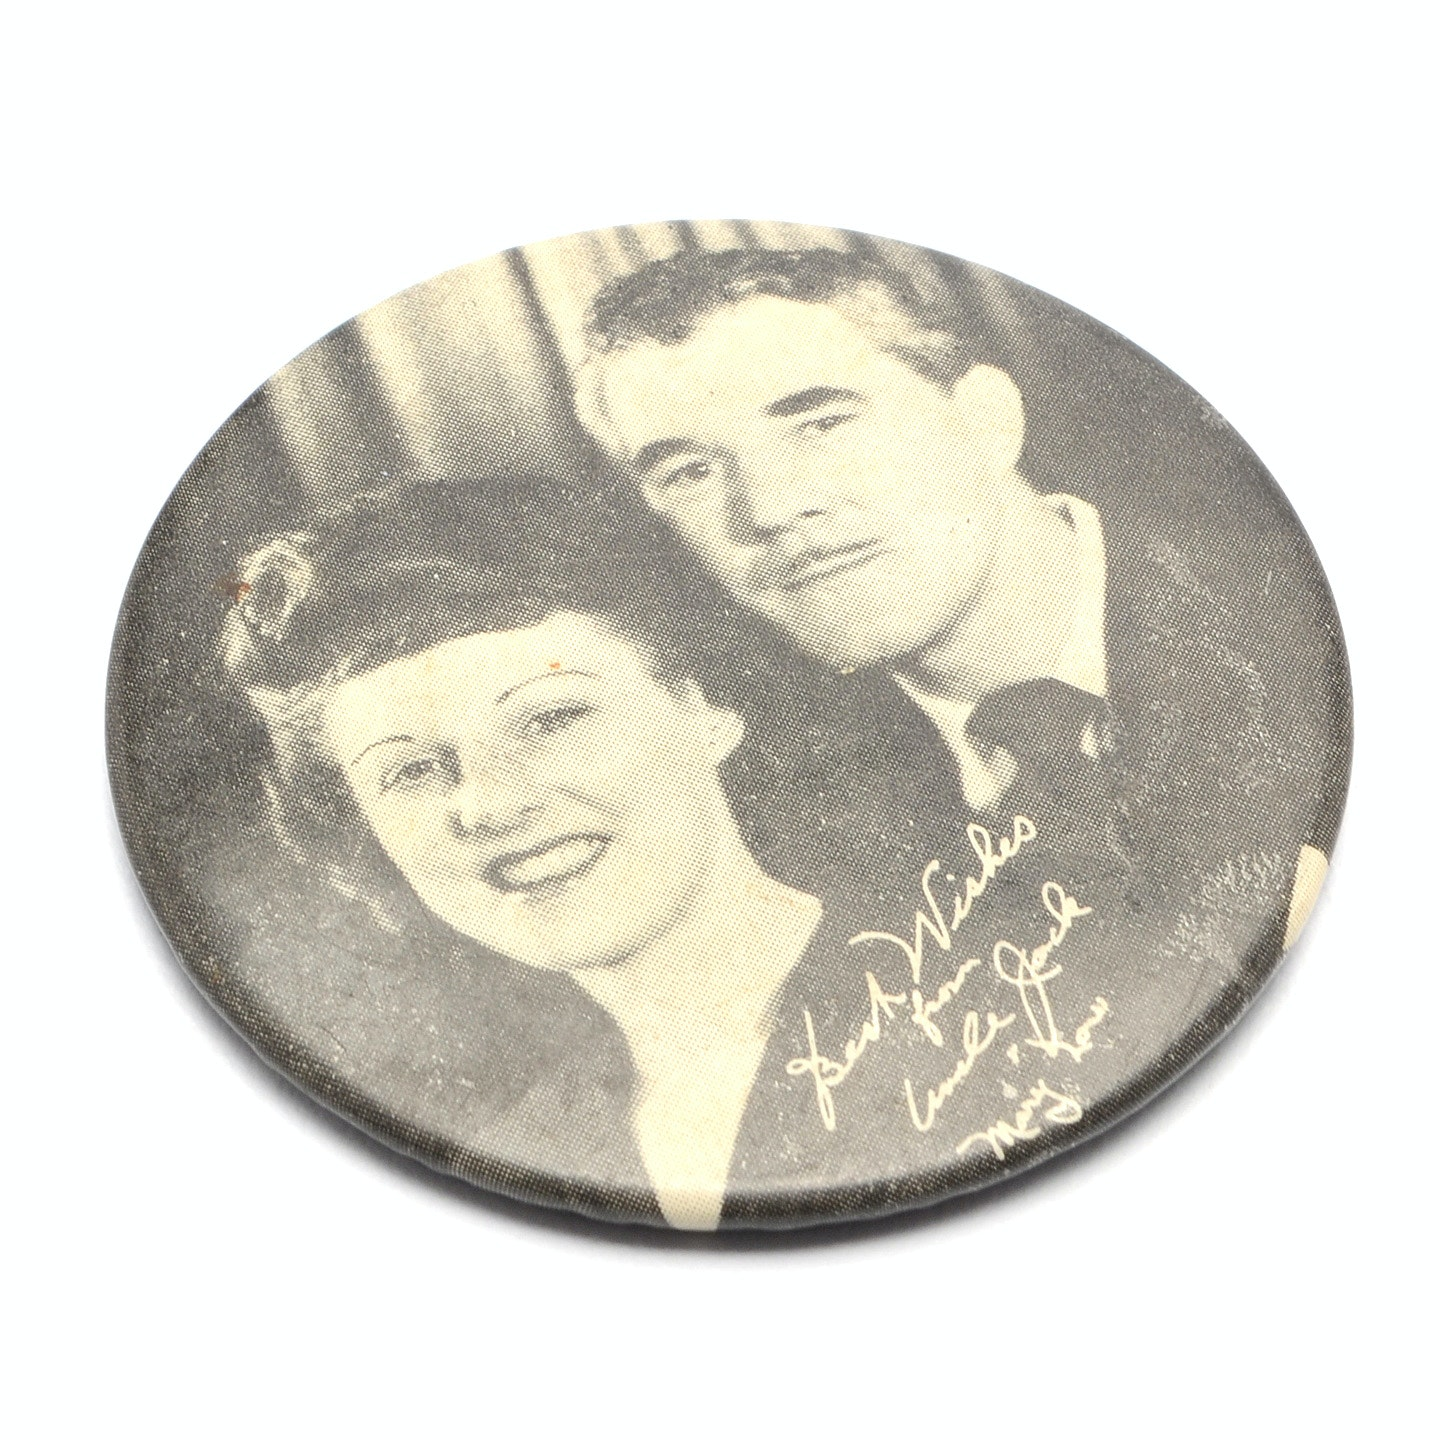 """1930s-1940s """"Uncle Jack and Mary"""" Lou"""" Pocket Mirror"""